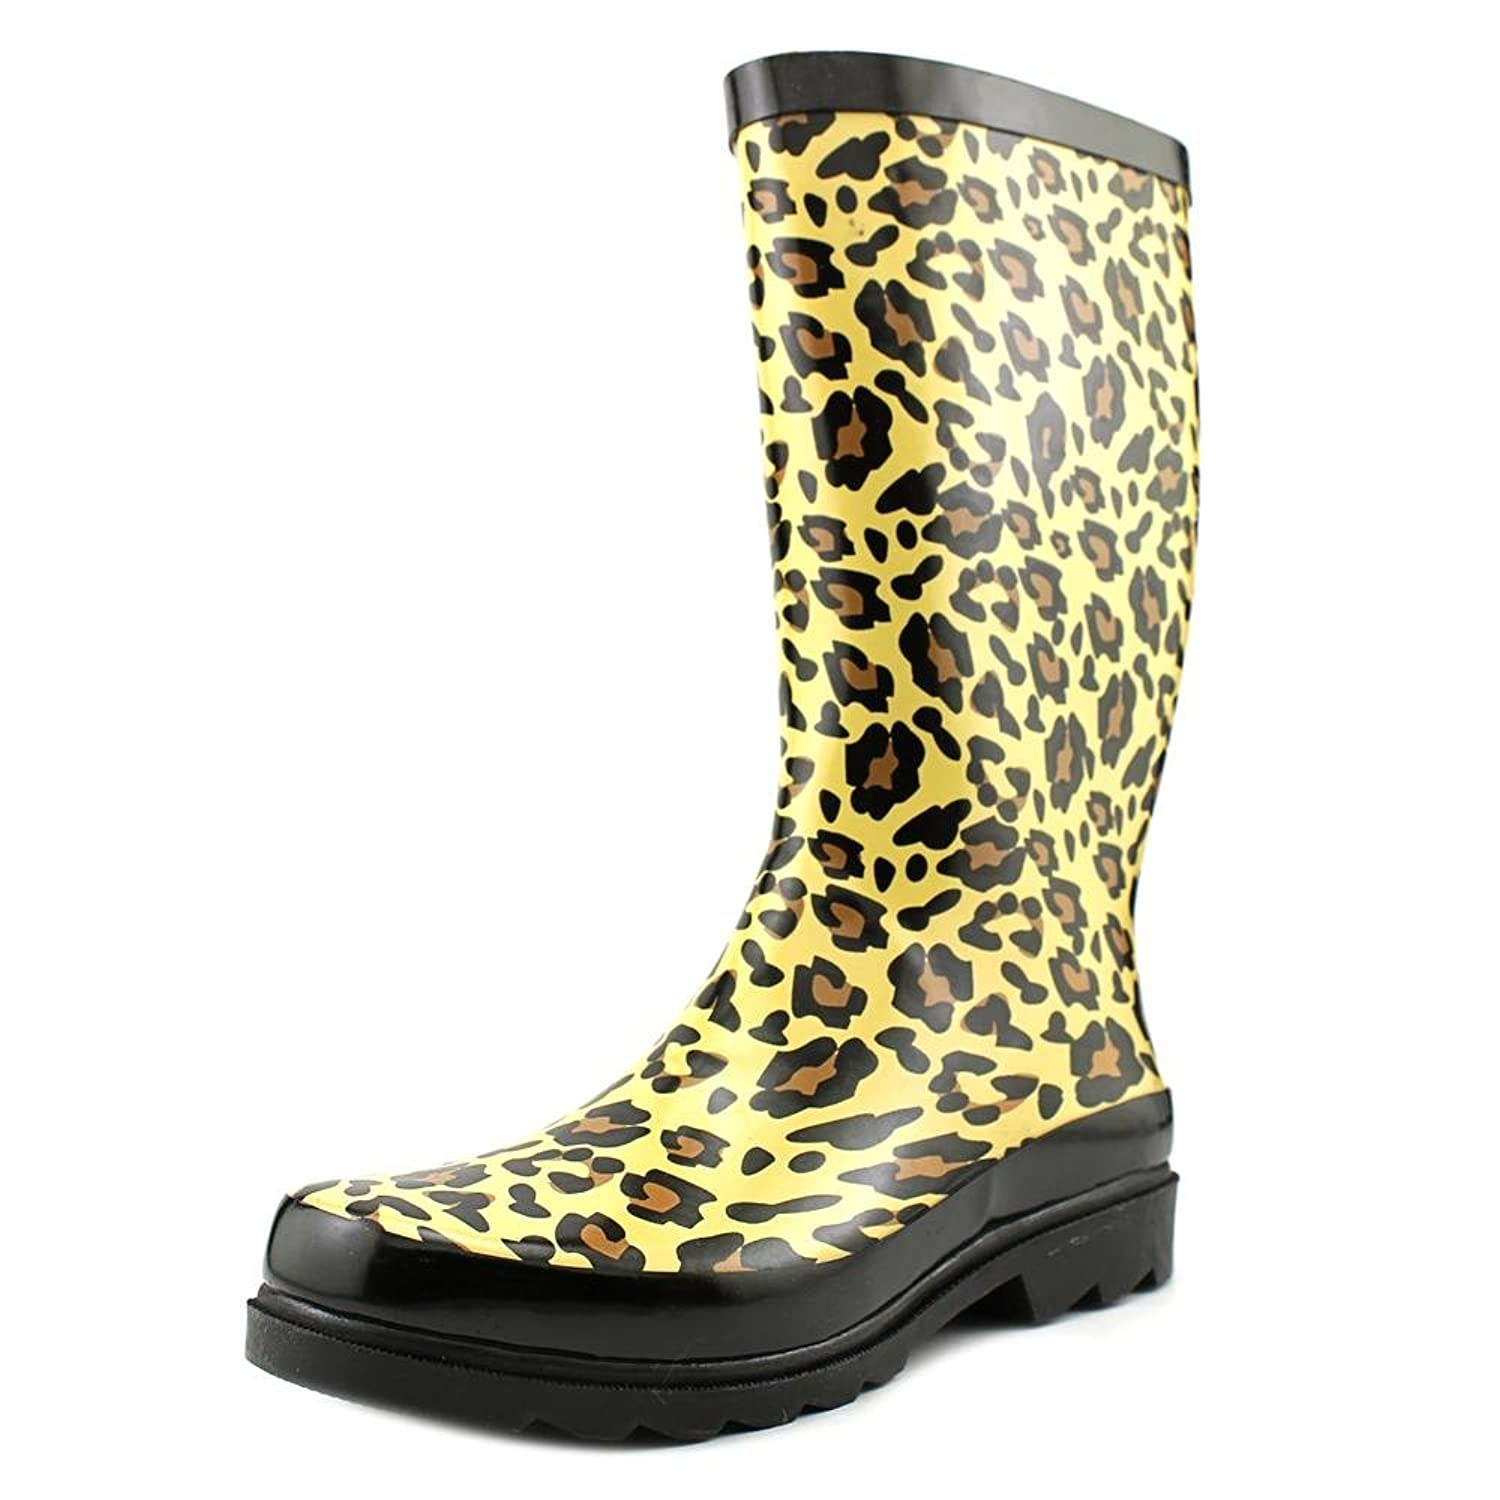 143 Girl Talory Women US 10 Gold Rain Boot